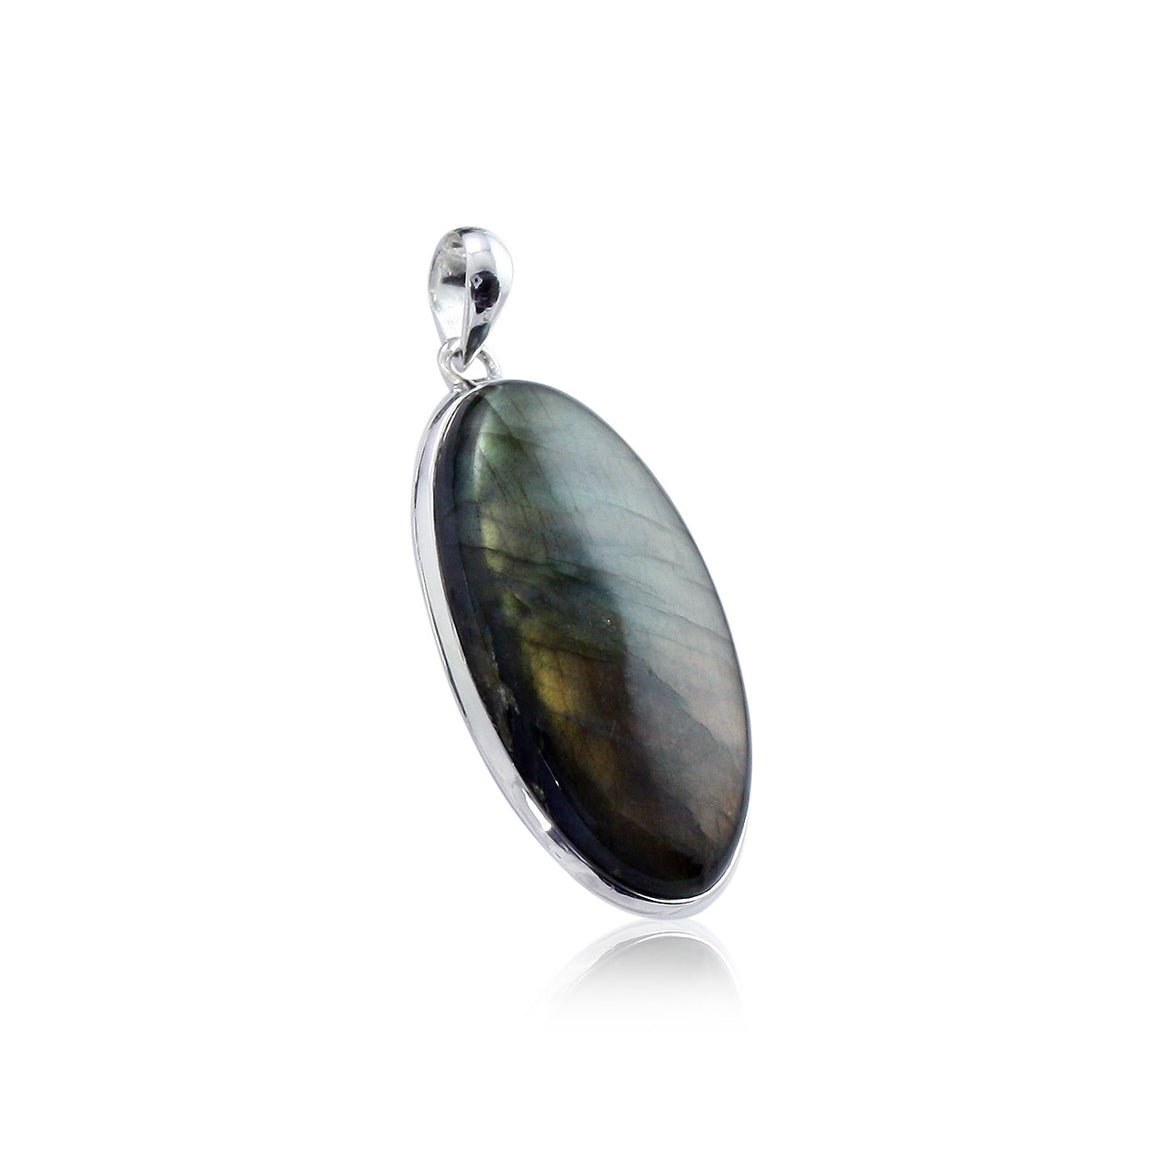 Labradorite Pendant - One of a Kind